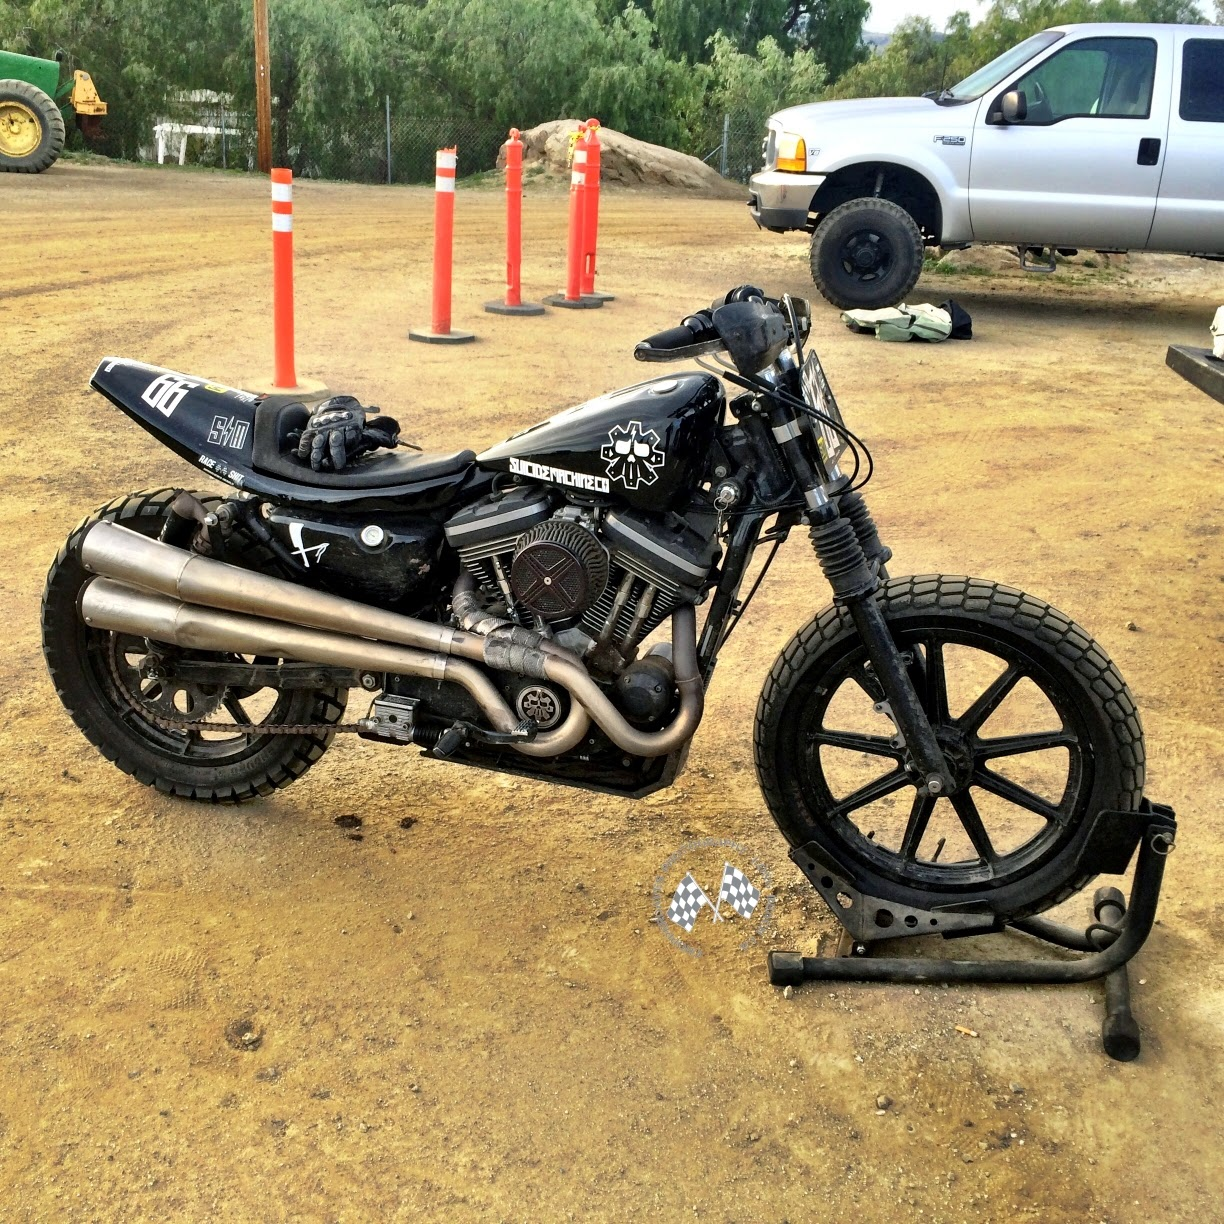 Chopper Daves Sportster Flat Tracker Blog Post RE-Post